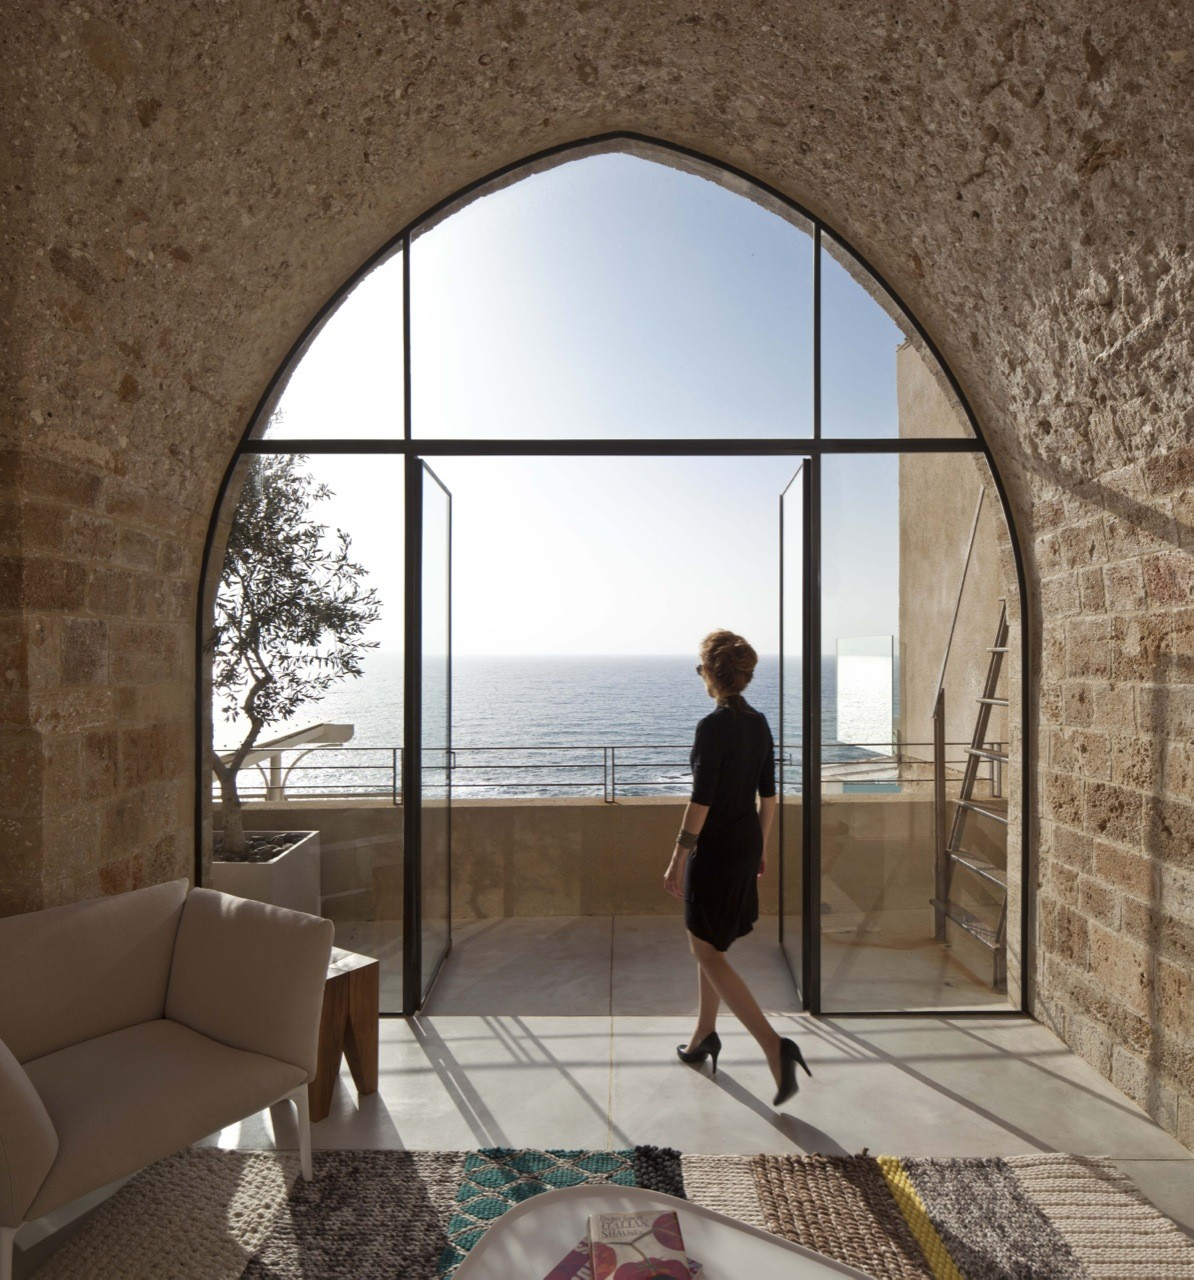 Jaffa Apartment / Pitsou Kedem Architect, © Amit Geron